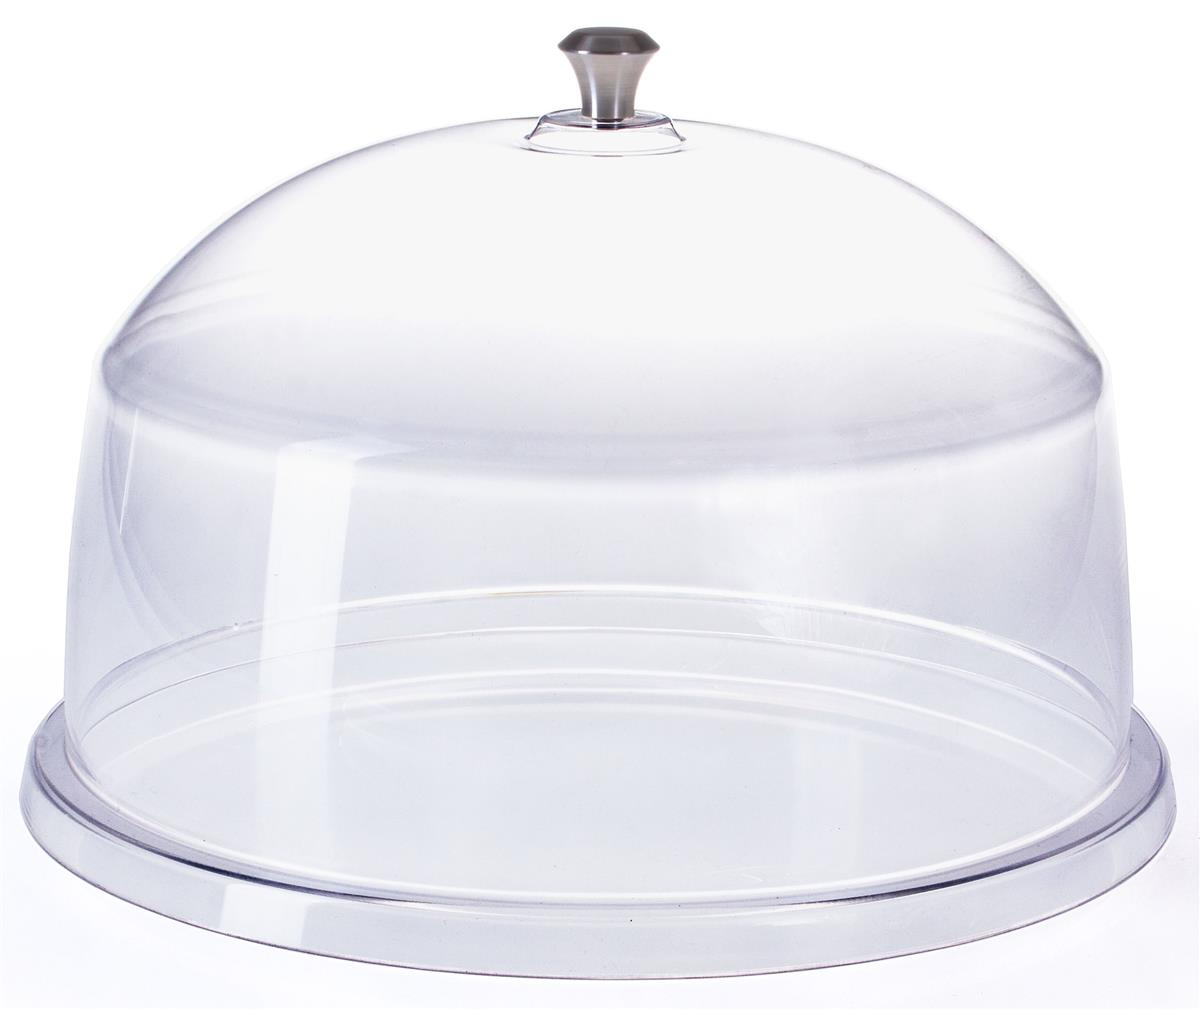 Cake Dome Round Cover For Platters